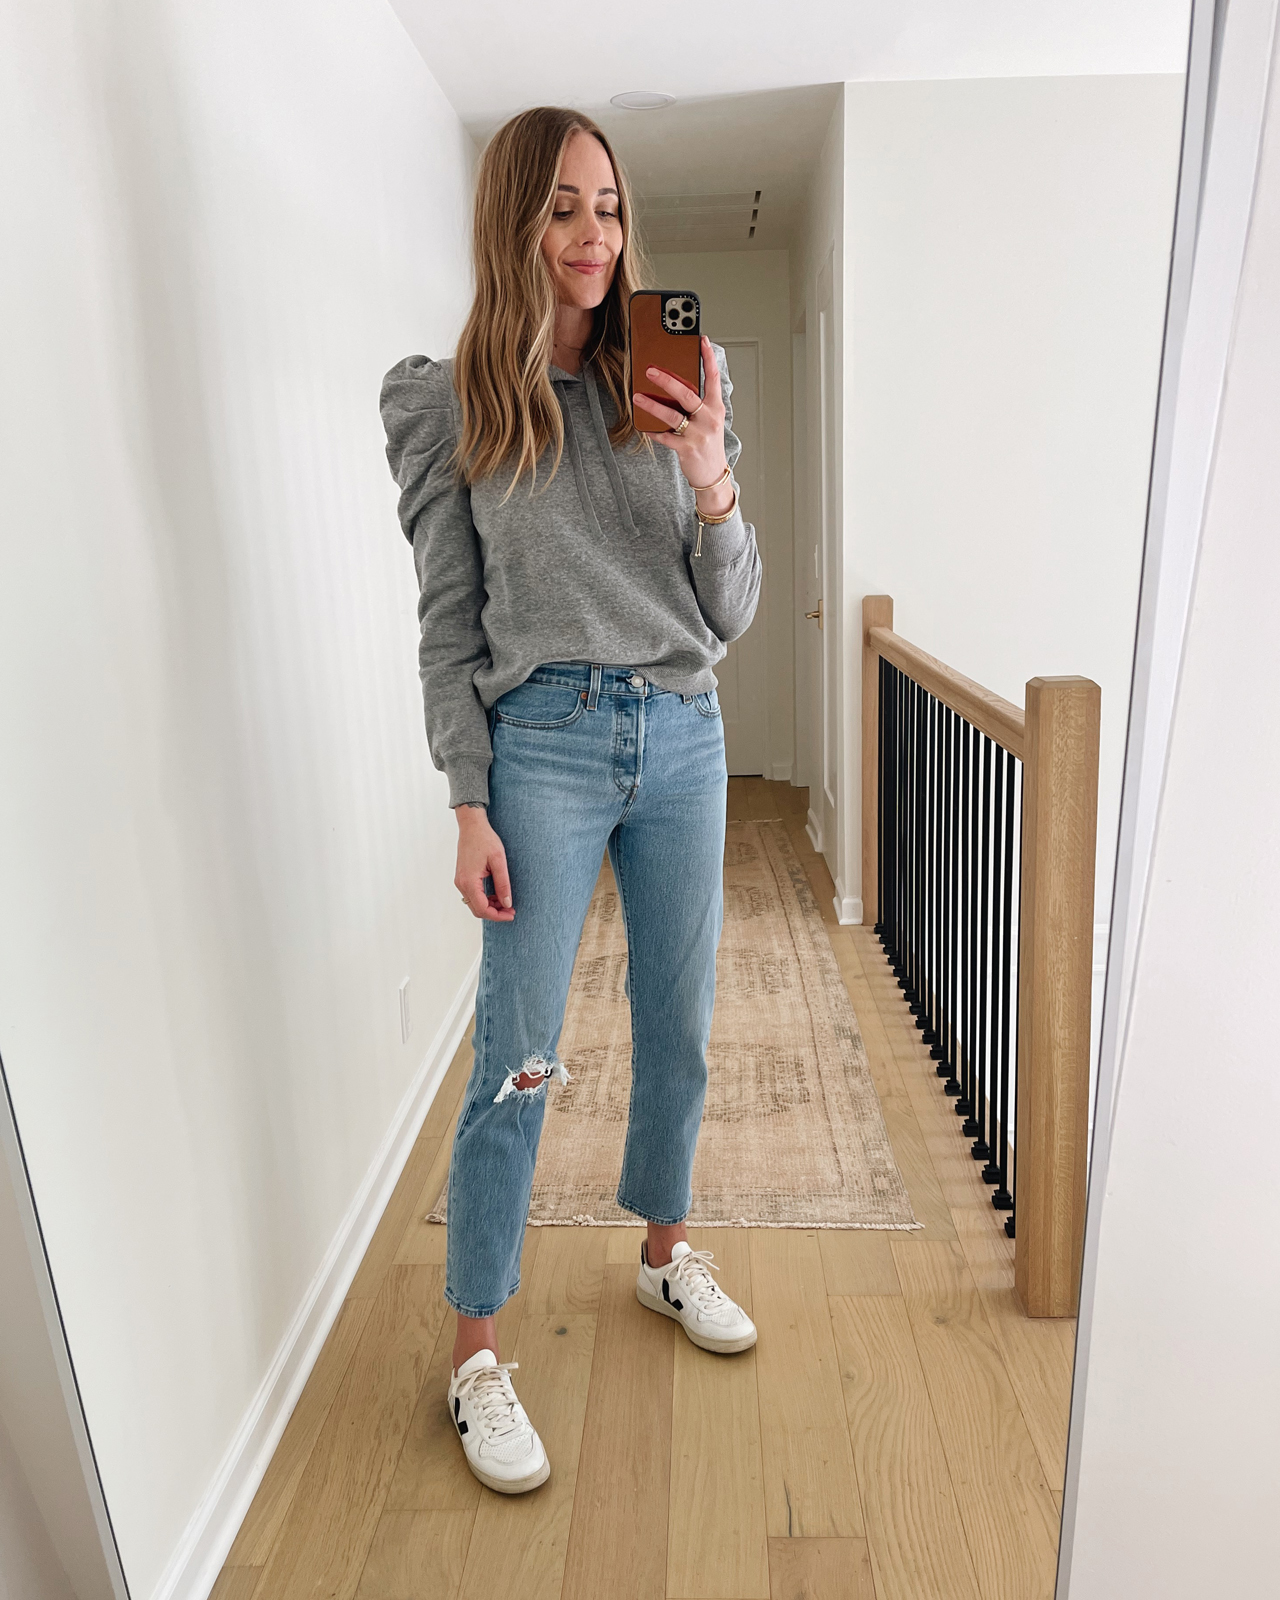 Fashion Jackson Wearing Levis Wedgie Straight Jeans Review Tango Fray Grey Puff Sleeve Sweatshirt Veja V10 Sneakers